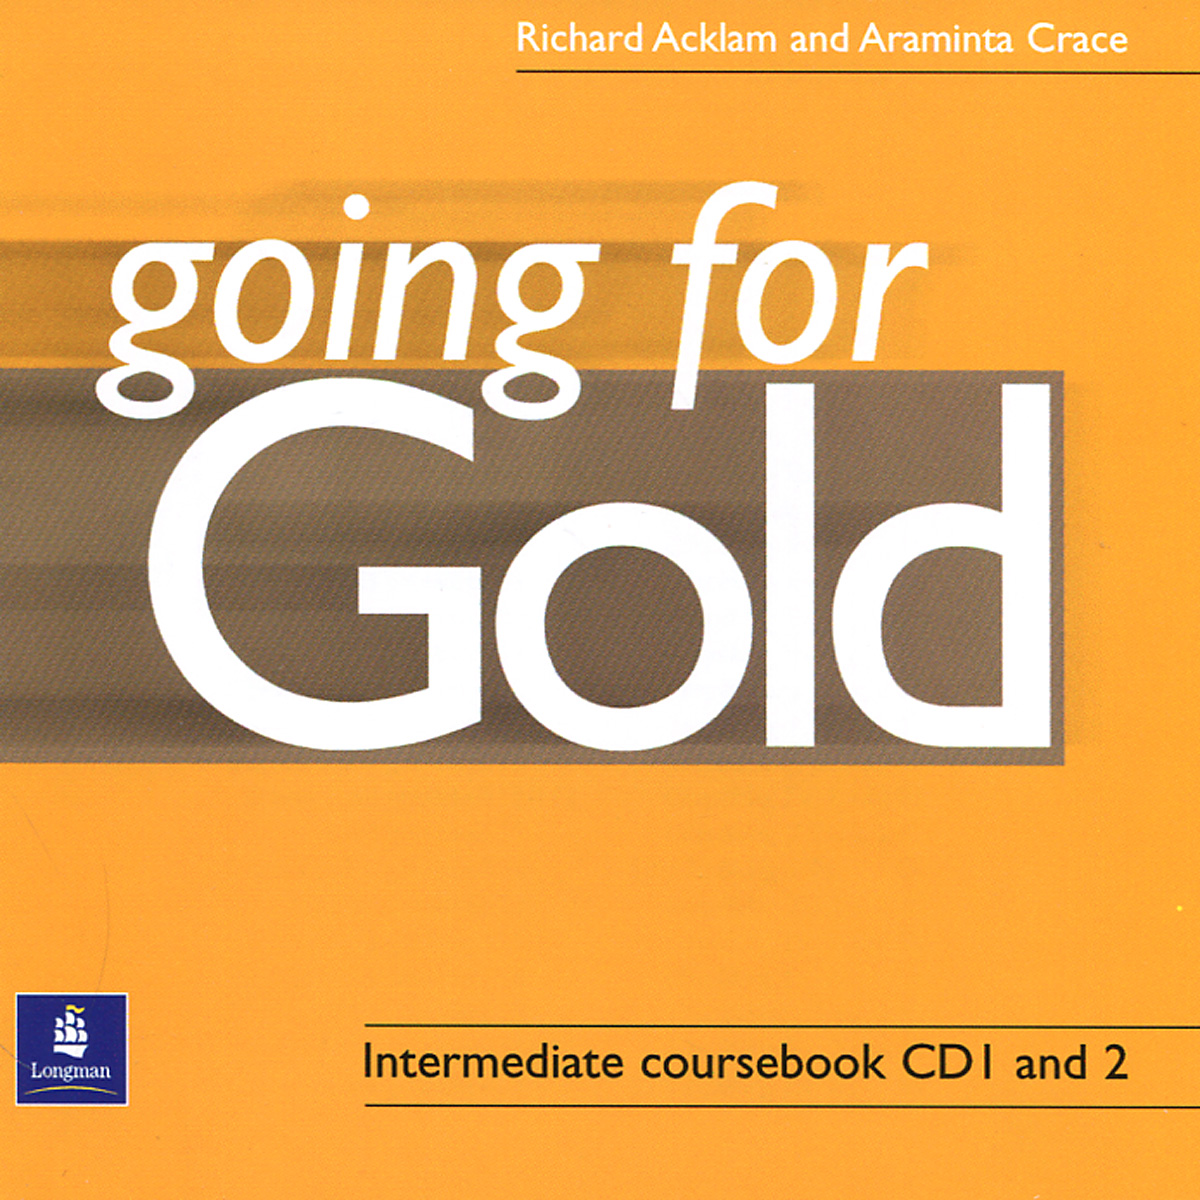 Going for Gold: Intermediate Coursebook (аудиокурс на 2 CD) the business pre intermediate level a2 to b1 аудиокурс на 2 cd